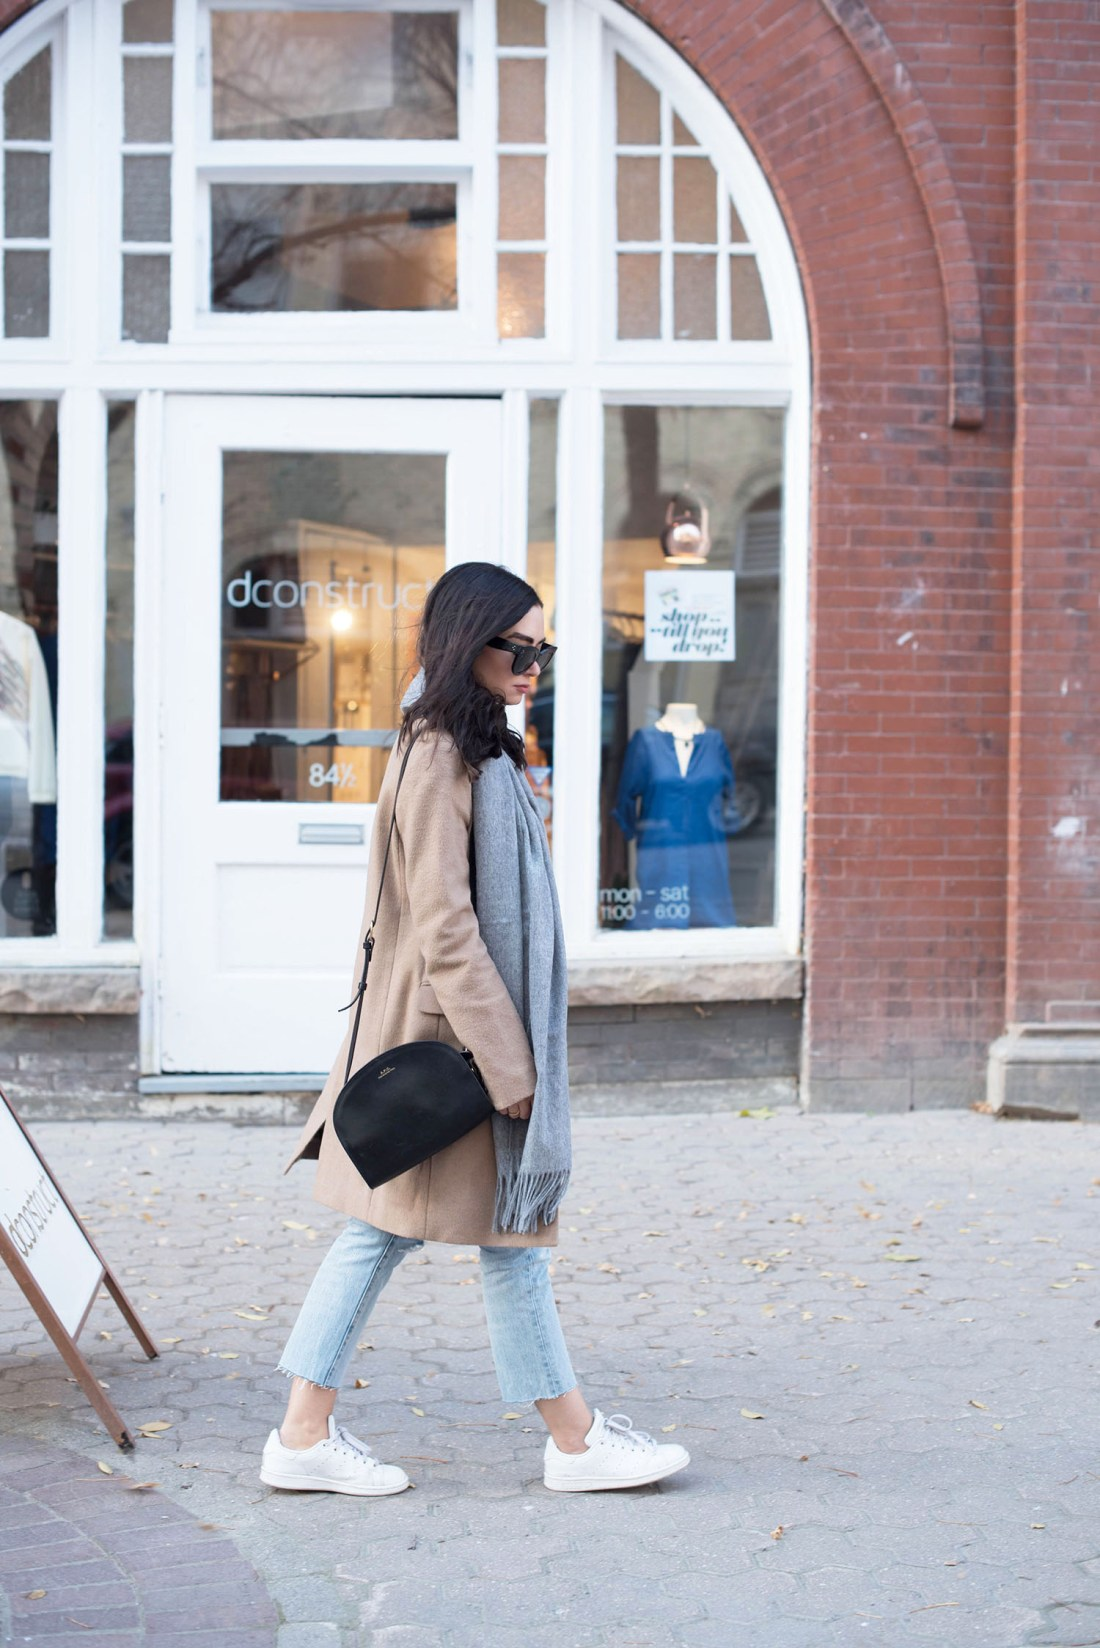 Winnipeg fashion blogger Cee Fardoe of Coco & Vera walks the streets of The Exchange District wearing a Uniqlo camel coat and carrying an APC half moon bag